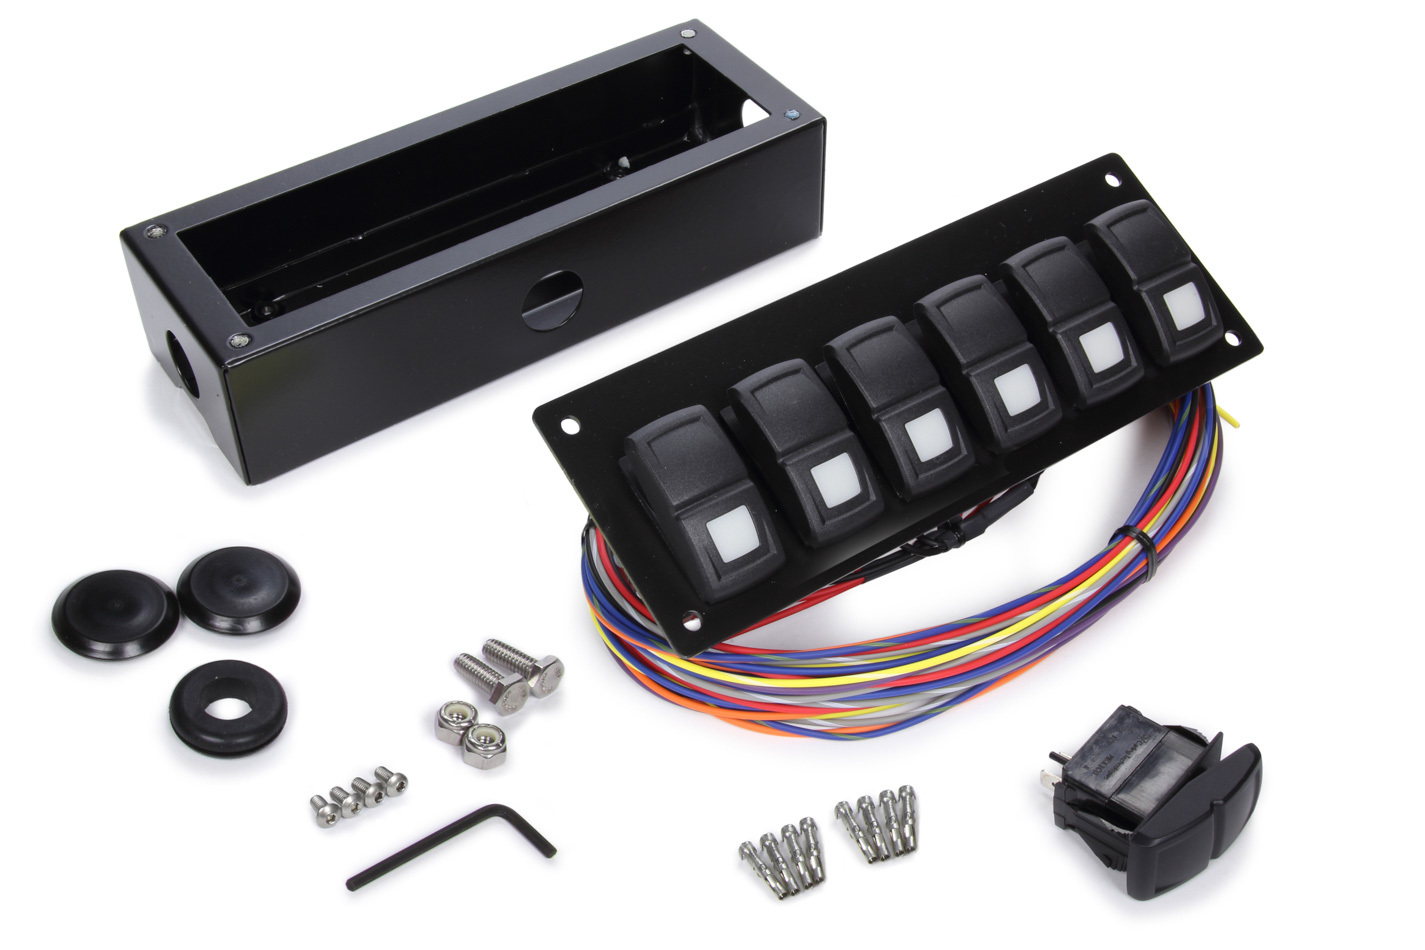 Painless Wiring 58106 Switch Panel, Track Rocker, Under Dash Mount, 6 Rockers, Installation Hardware / Wiring Harness Included, Indicator Lights, Black, Painless Track Rocker System, Kit